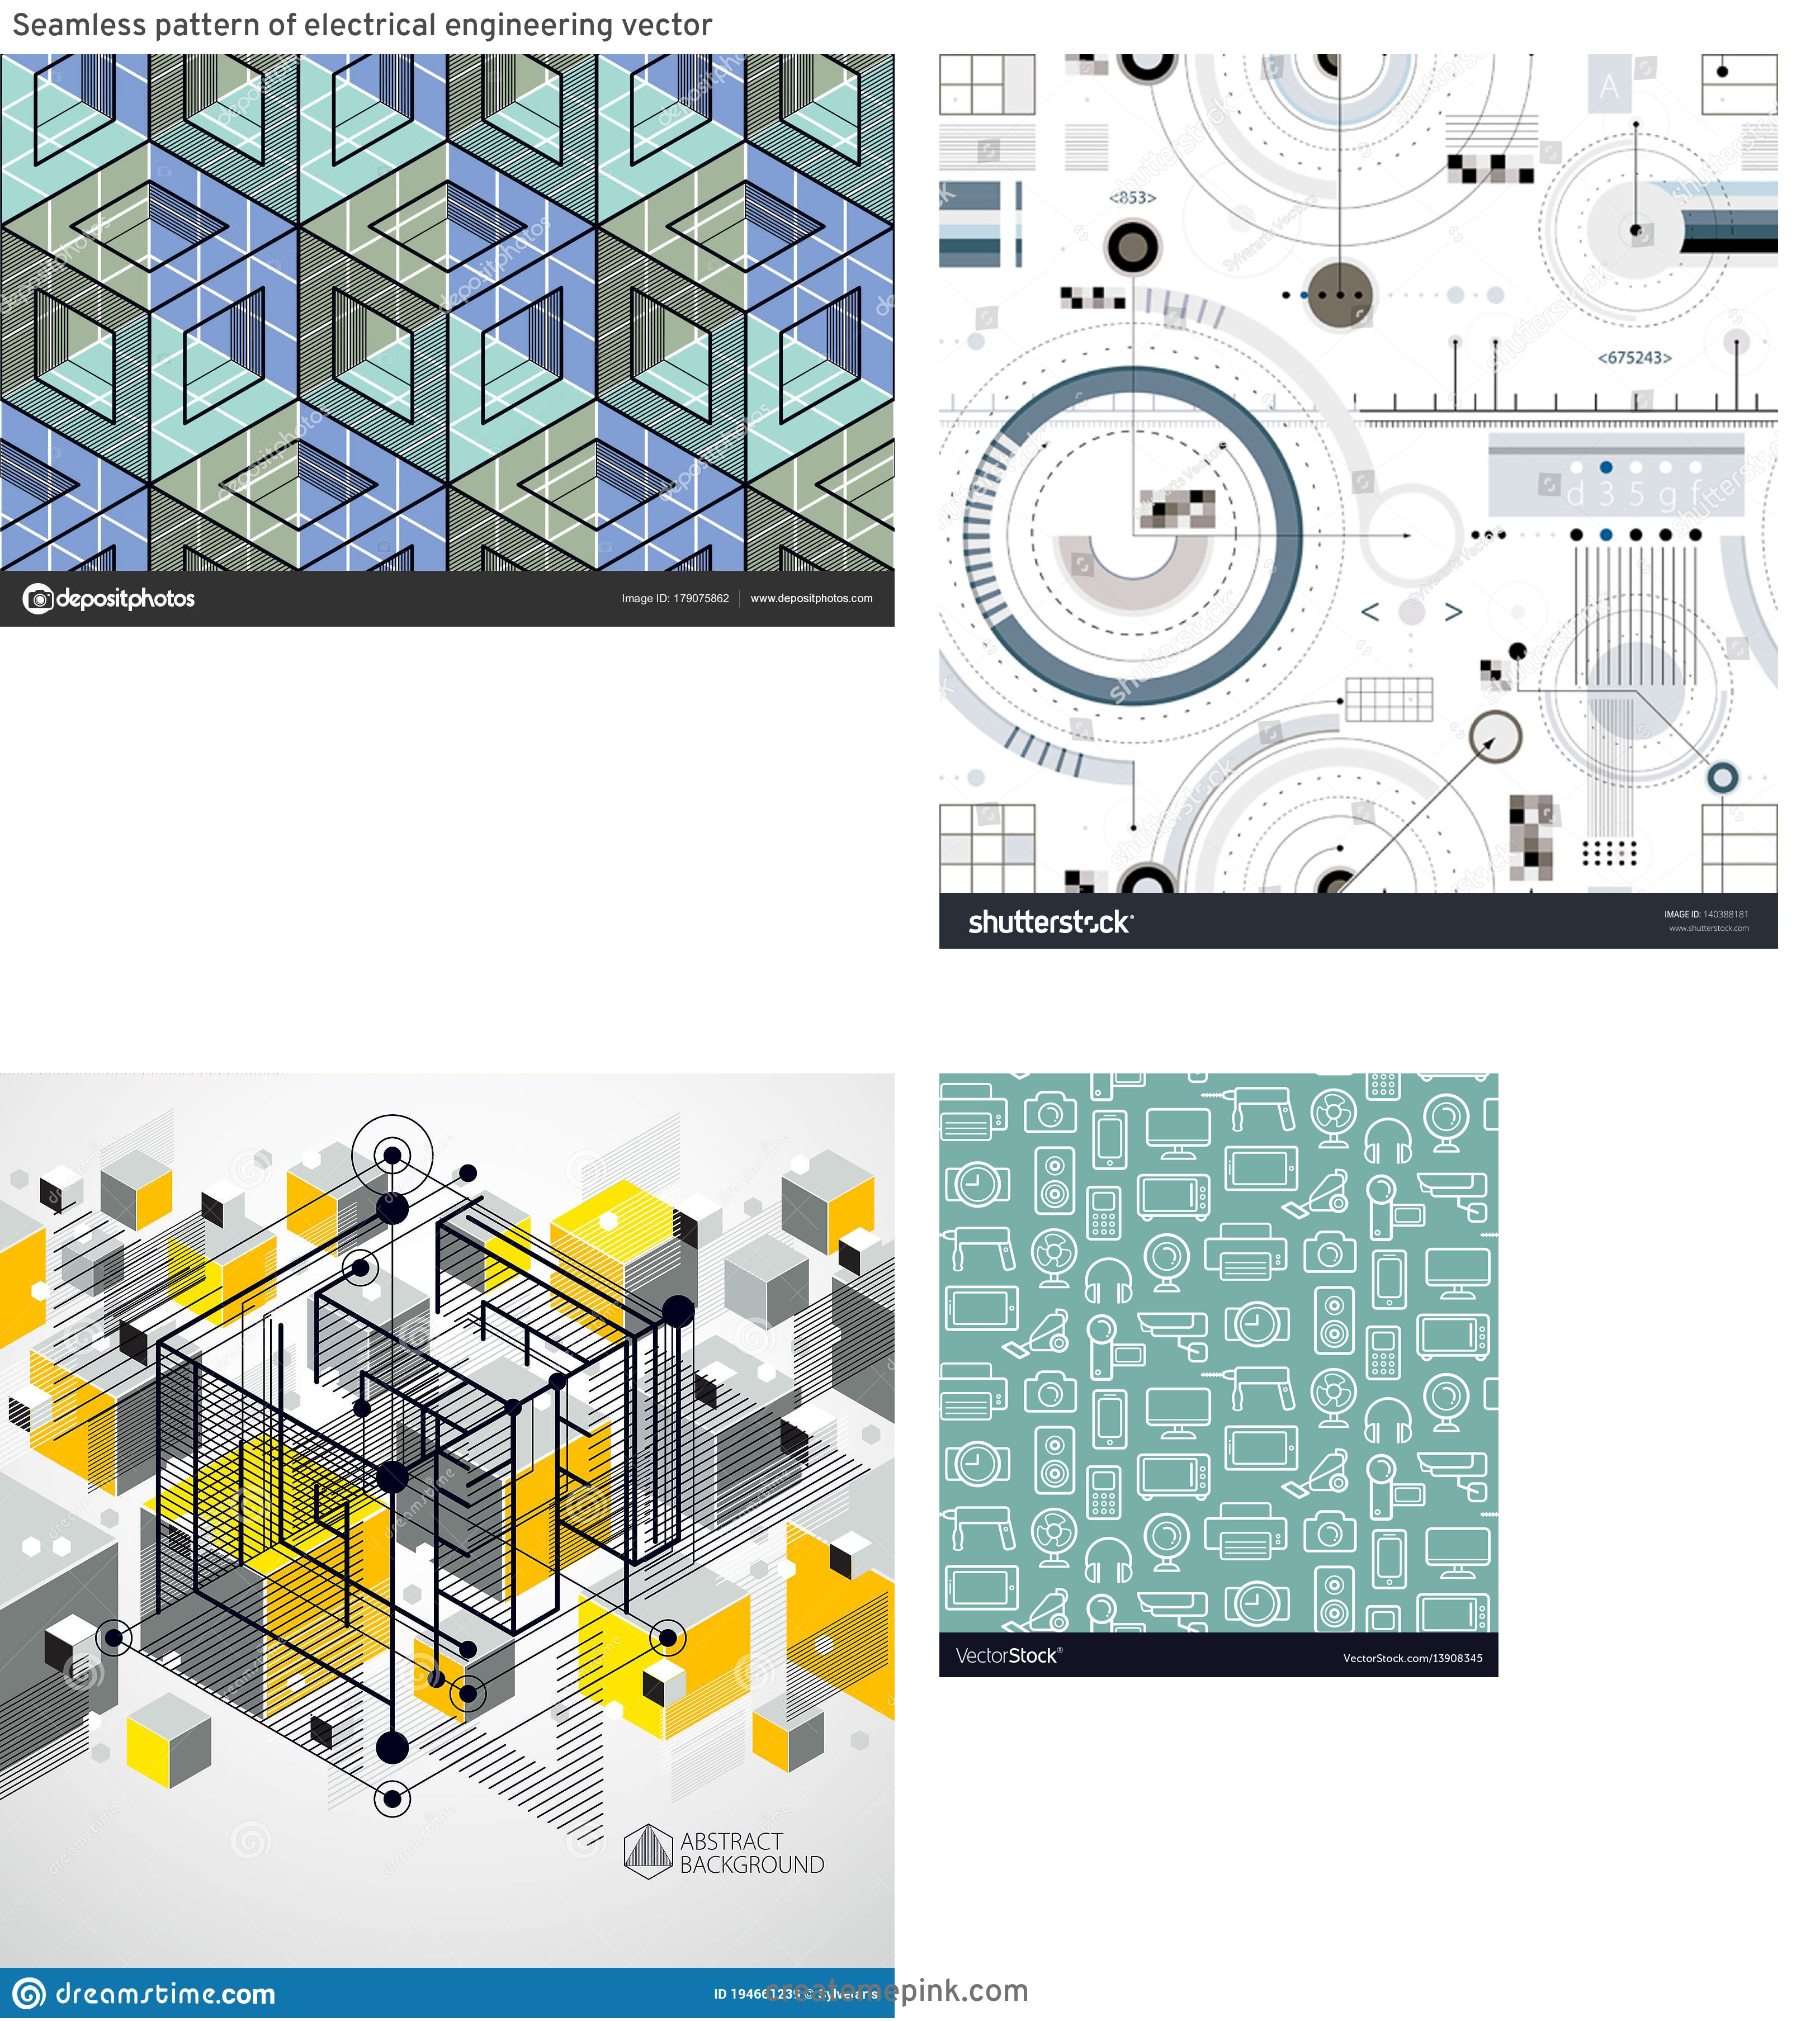 Engineering Vector Pattern: Seamless Pattern Of Electrical Engineering Vector